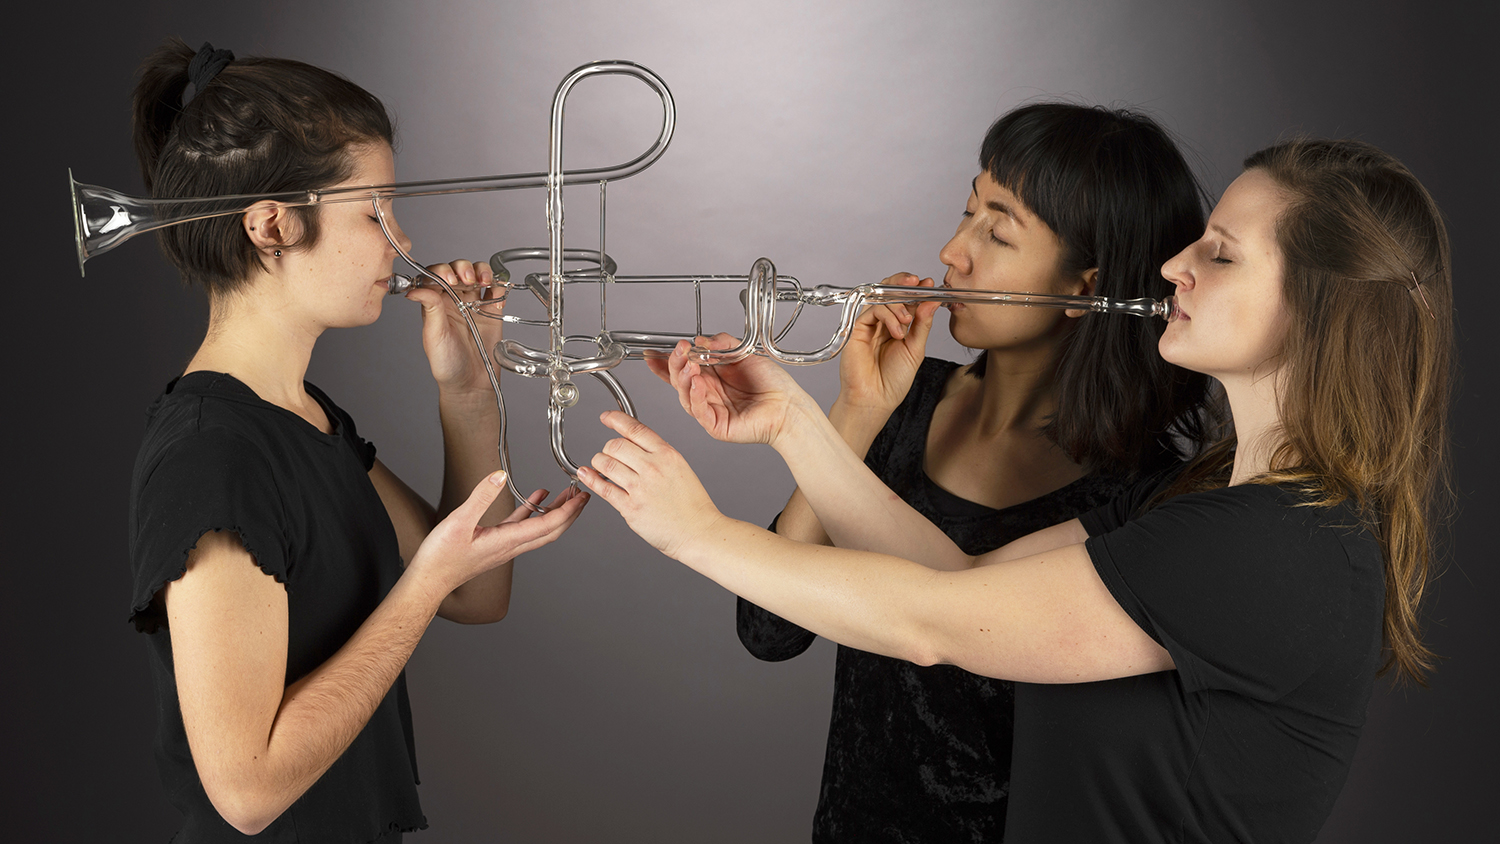 Three people play a glass trumpet that makes noise similar to a brass trumpet. The piece was designed to be an interactive art and music experience.